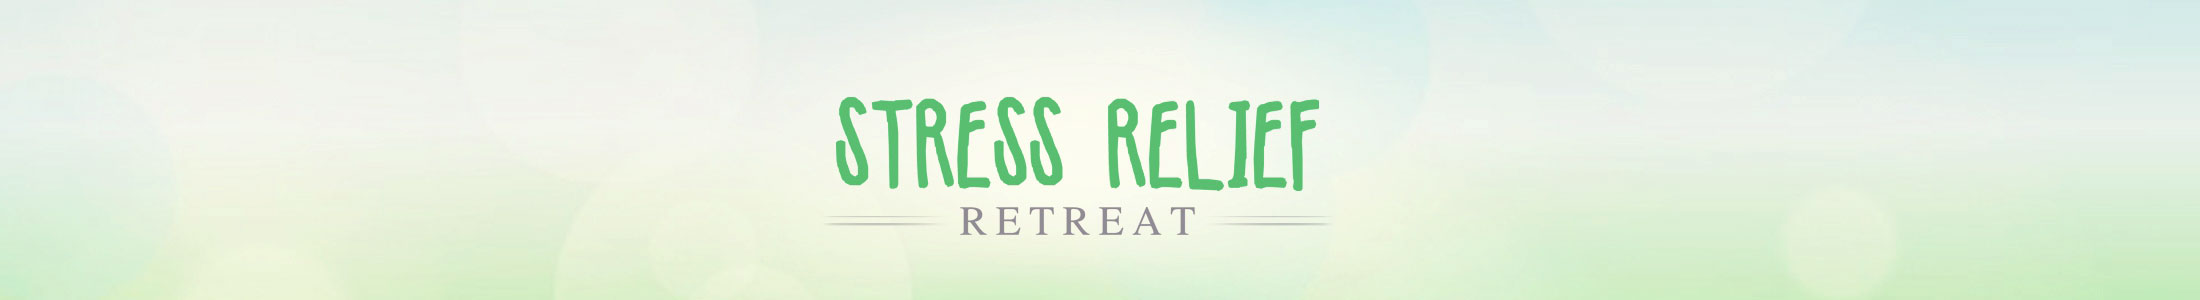 Stress Relief Retreat, Stress Release Retreat, Destress Retreat, Spiritual Retreat - Houston, Austin, Dallas, Texas, California, New york USA